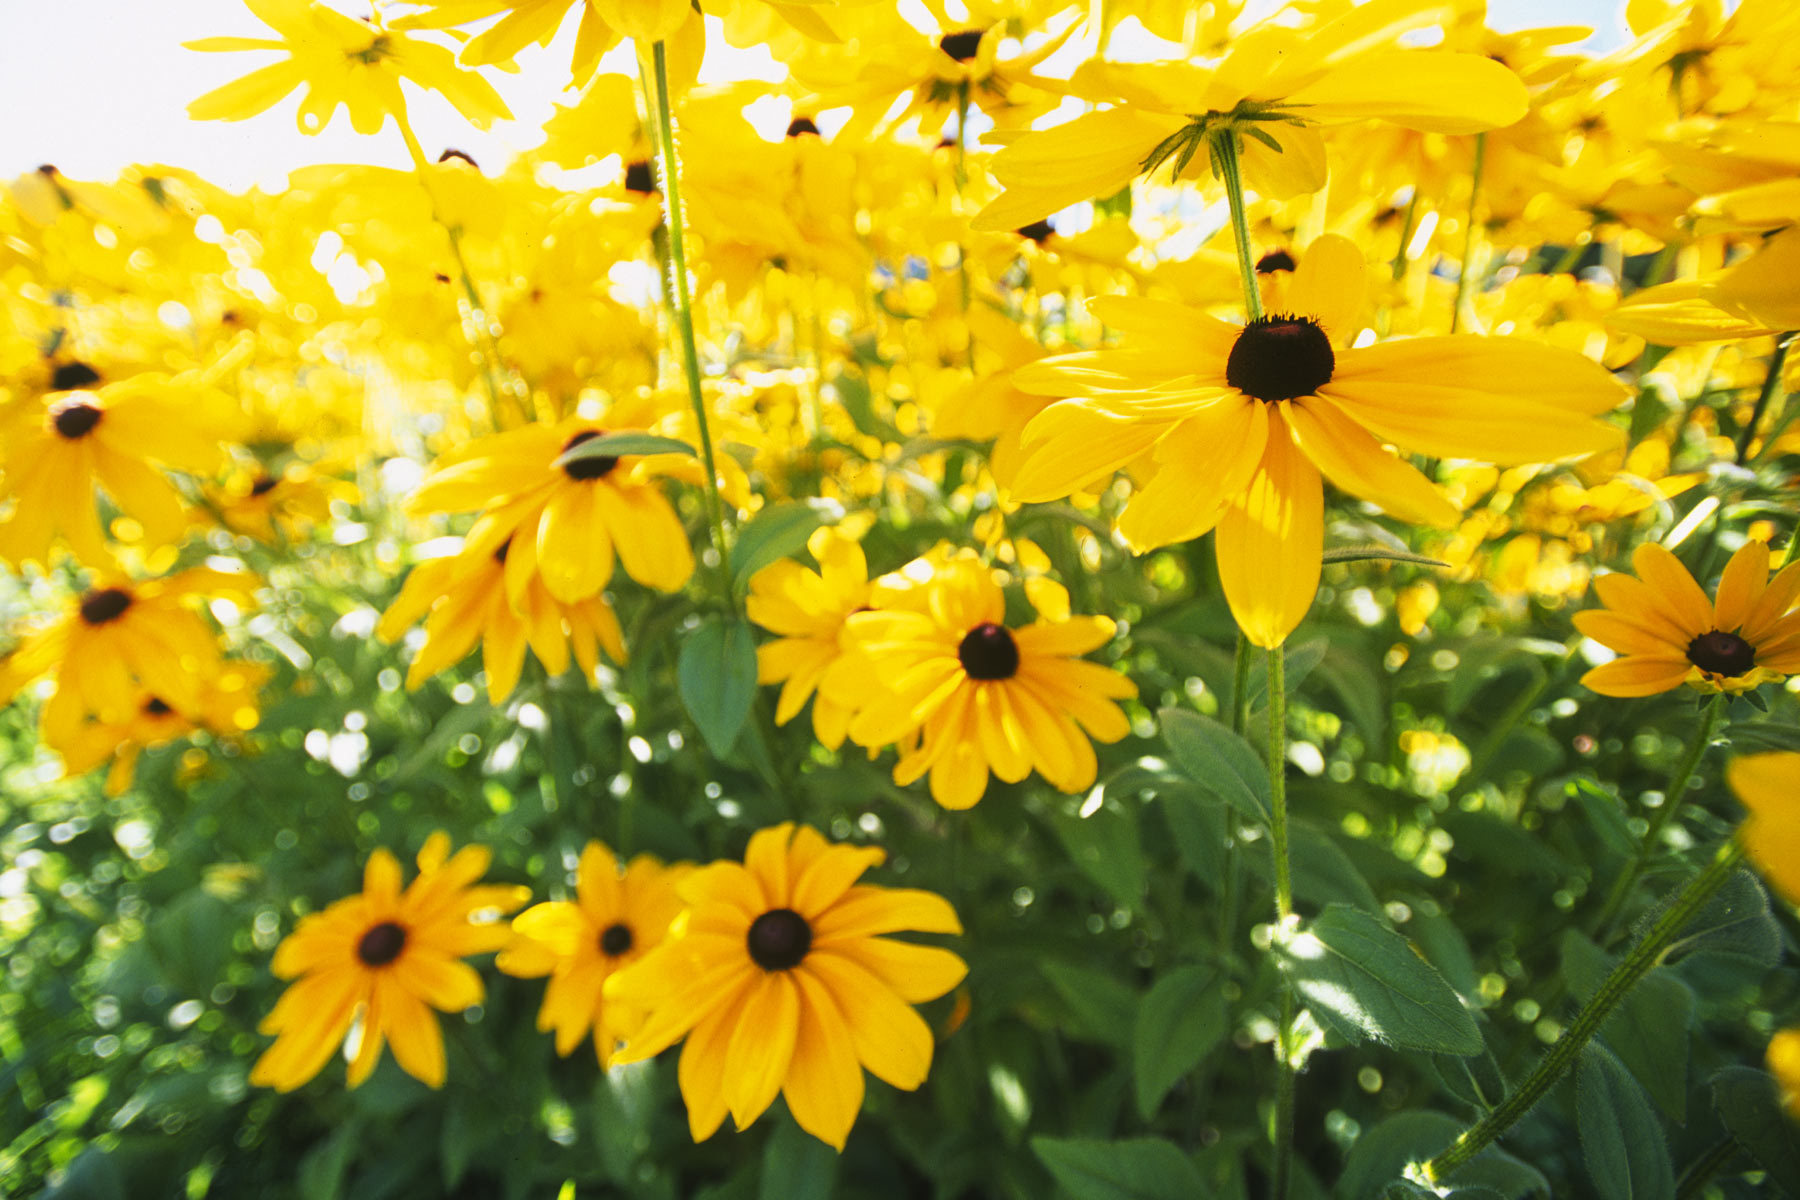 this giant patch of  rudbeckia appears in sadies' yard every summer. it is so big that there is a sense of place inside the patch among the stalks all tinted golden from the petals filtering the sun.  I wanted to go inside but i couldn't fit but my camera could.  this is what a rudbeckia room looks like.